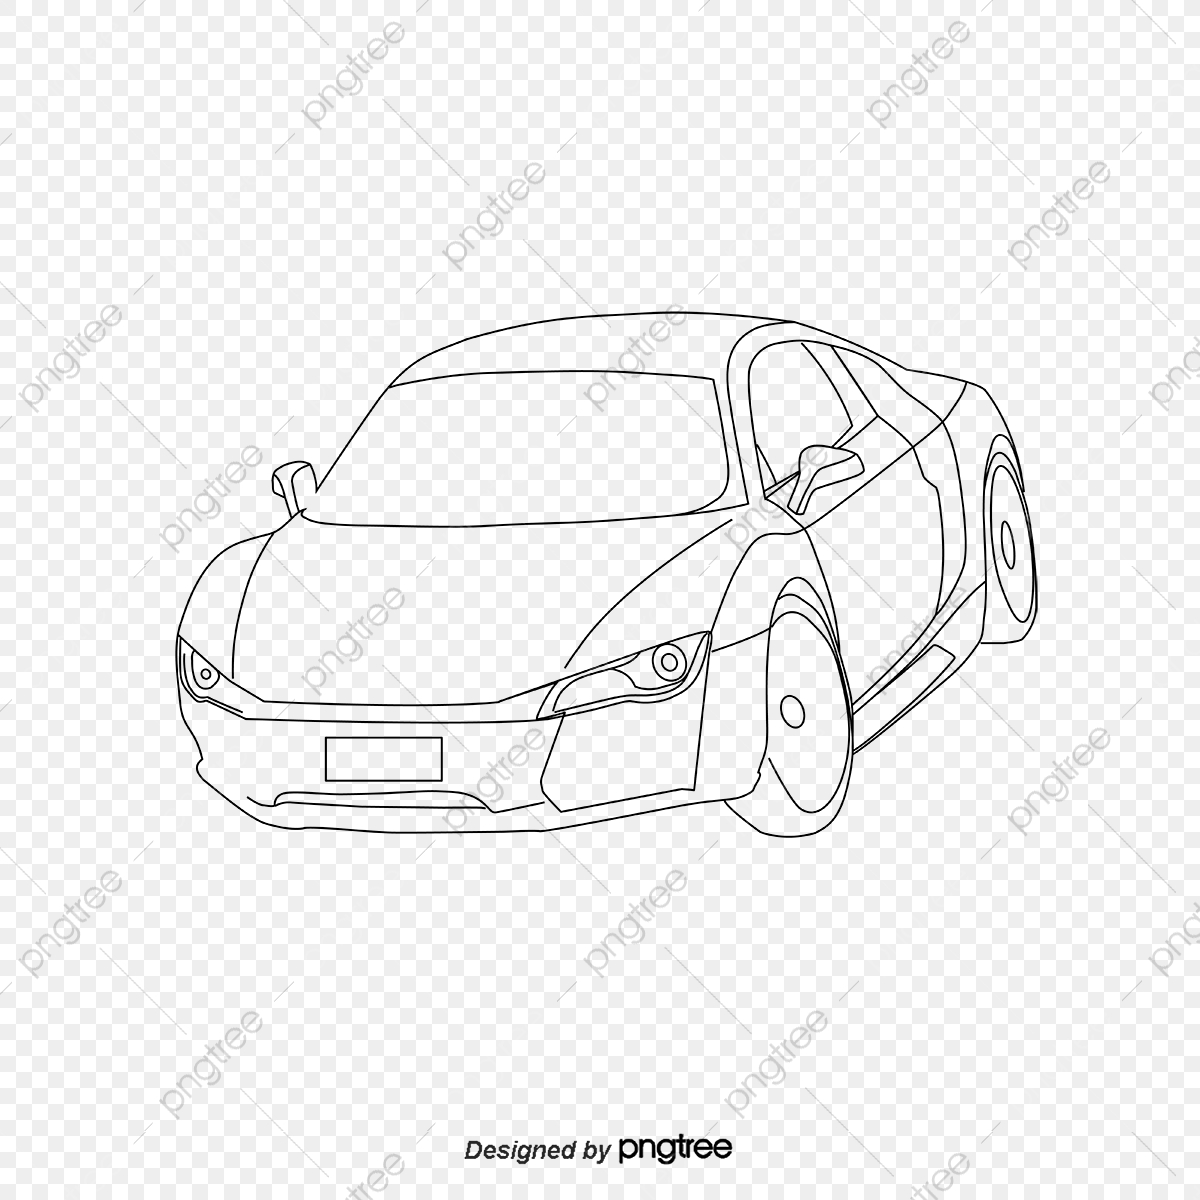 Bmw Vector Bmw Bmw Logo Transportation Png And Vector With Transparent Background For Free Download